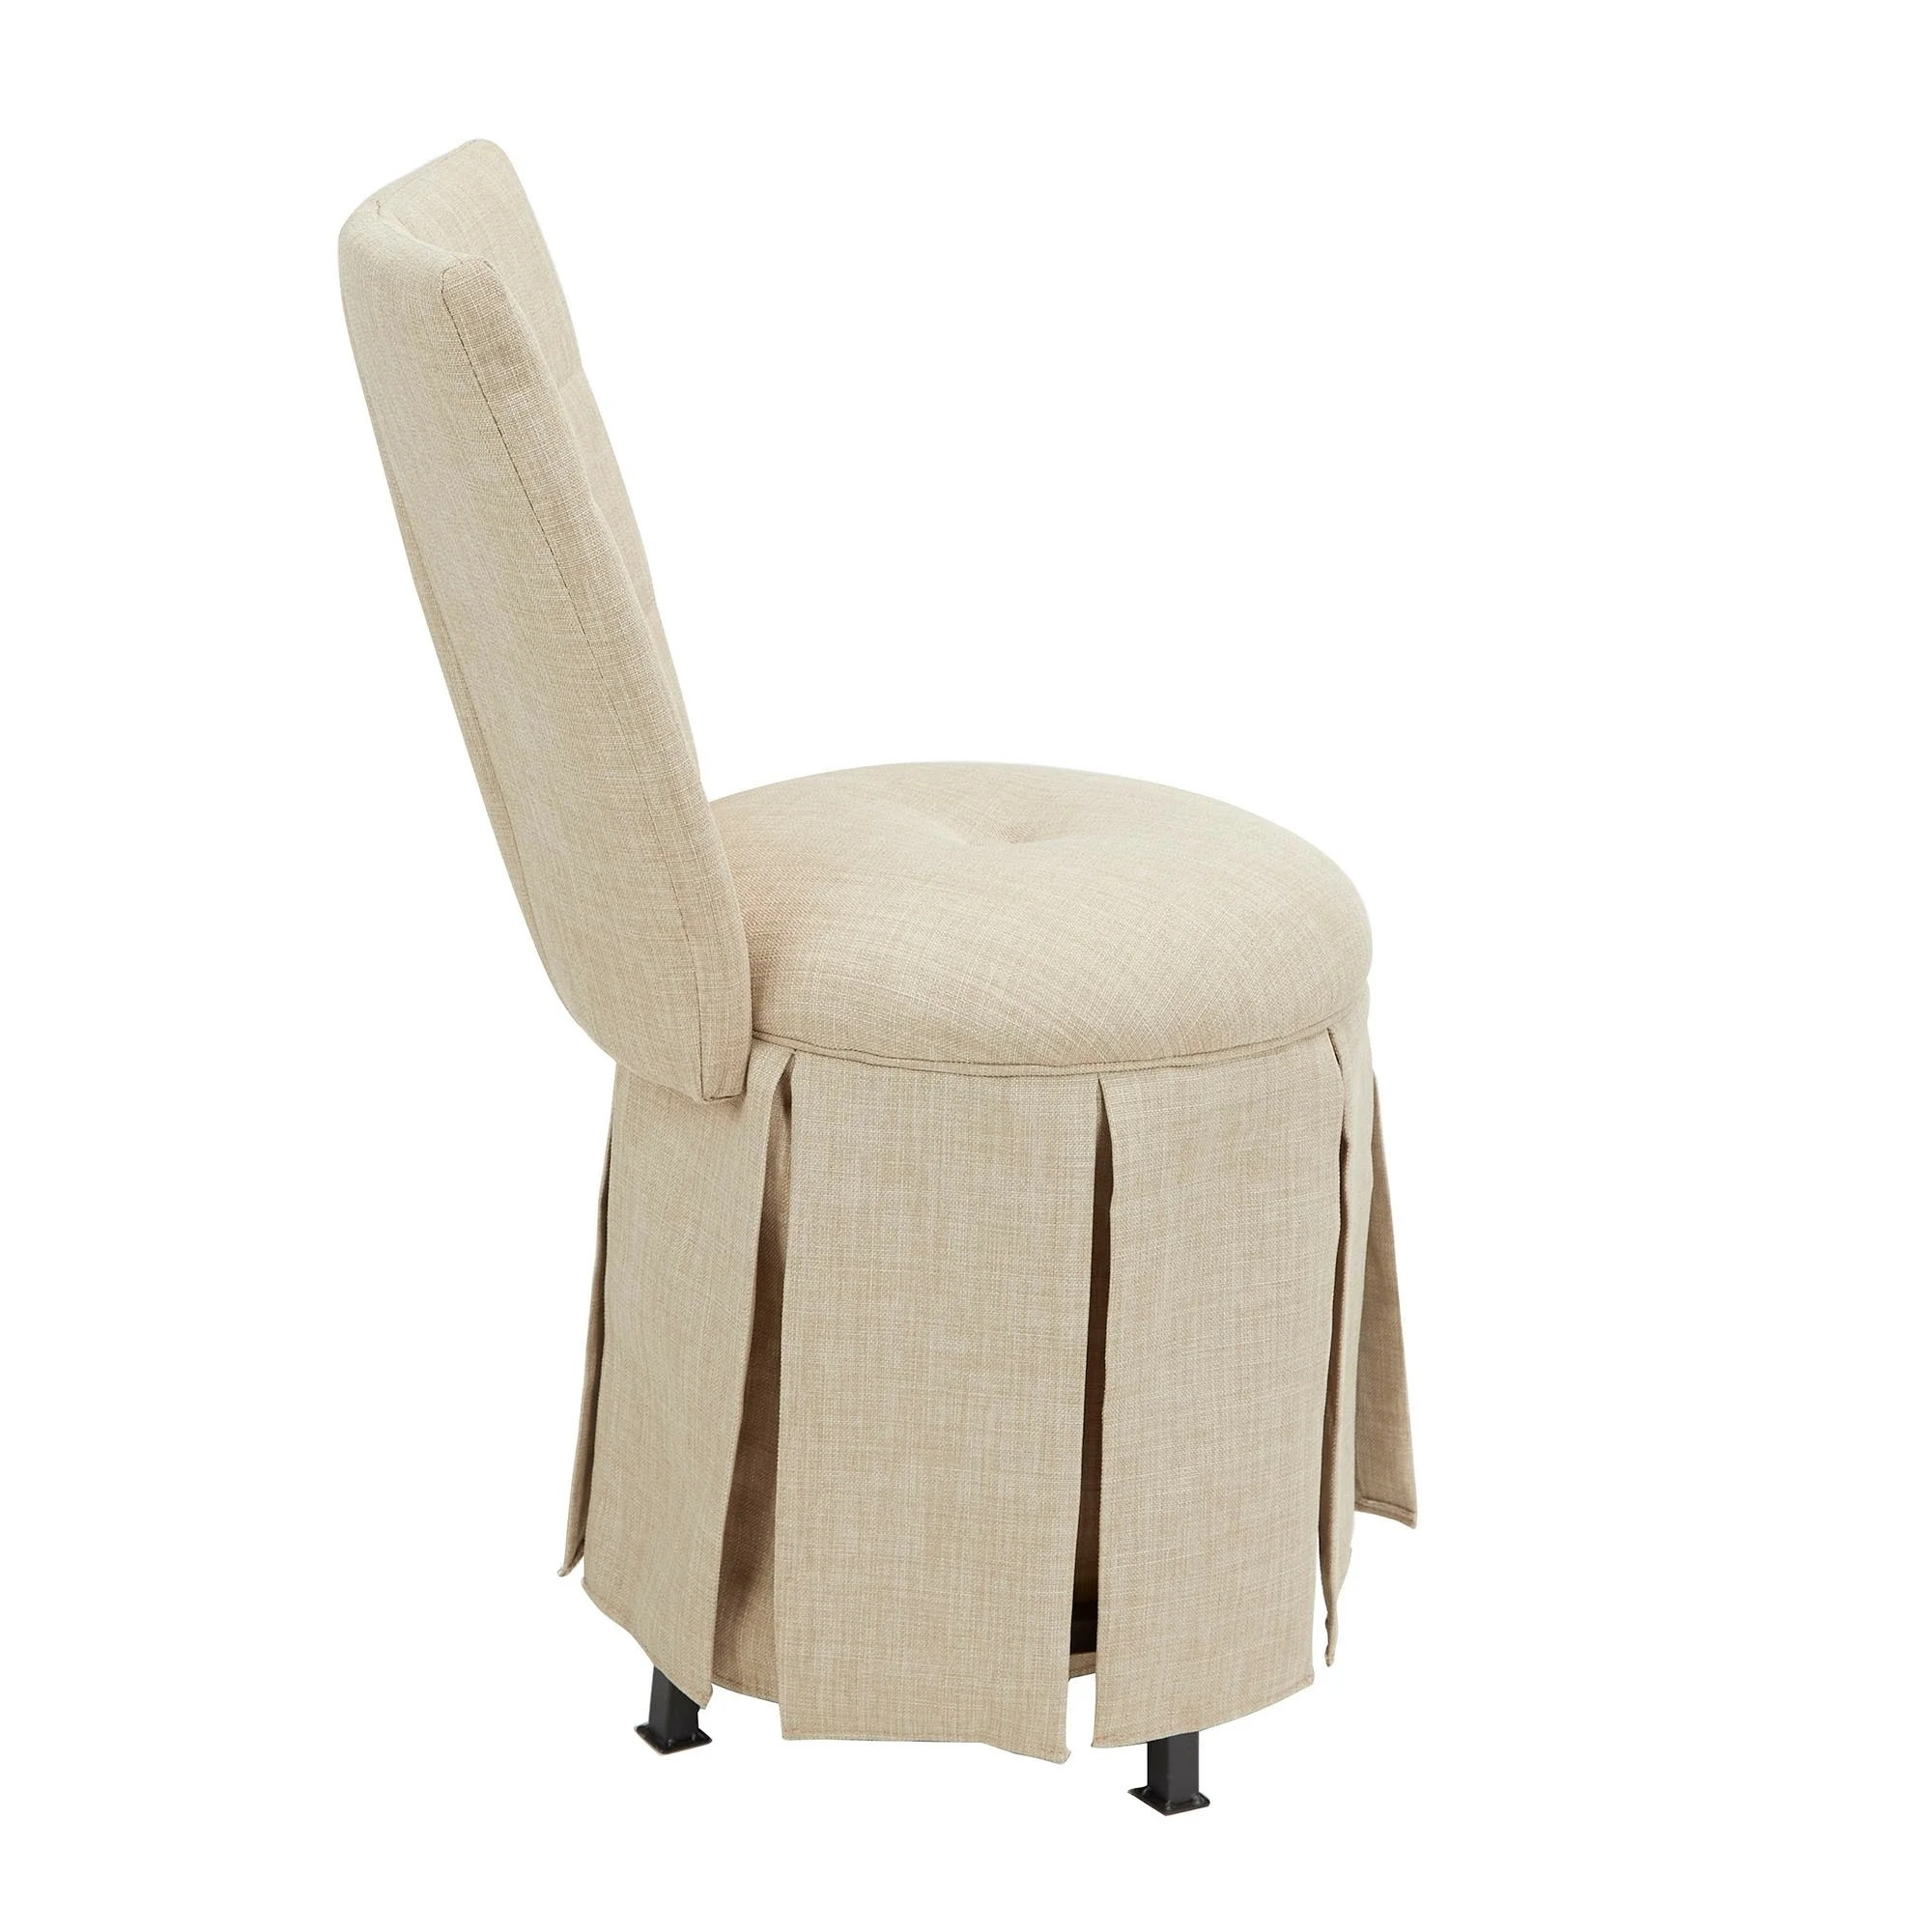 Tufted Vanity Chair Smith Skirted Swivel Vanity Chair With Diamond Tufted Back